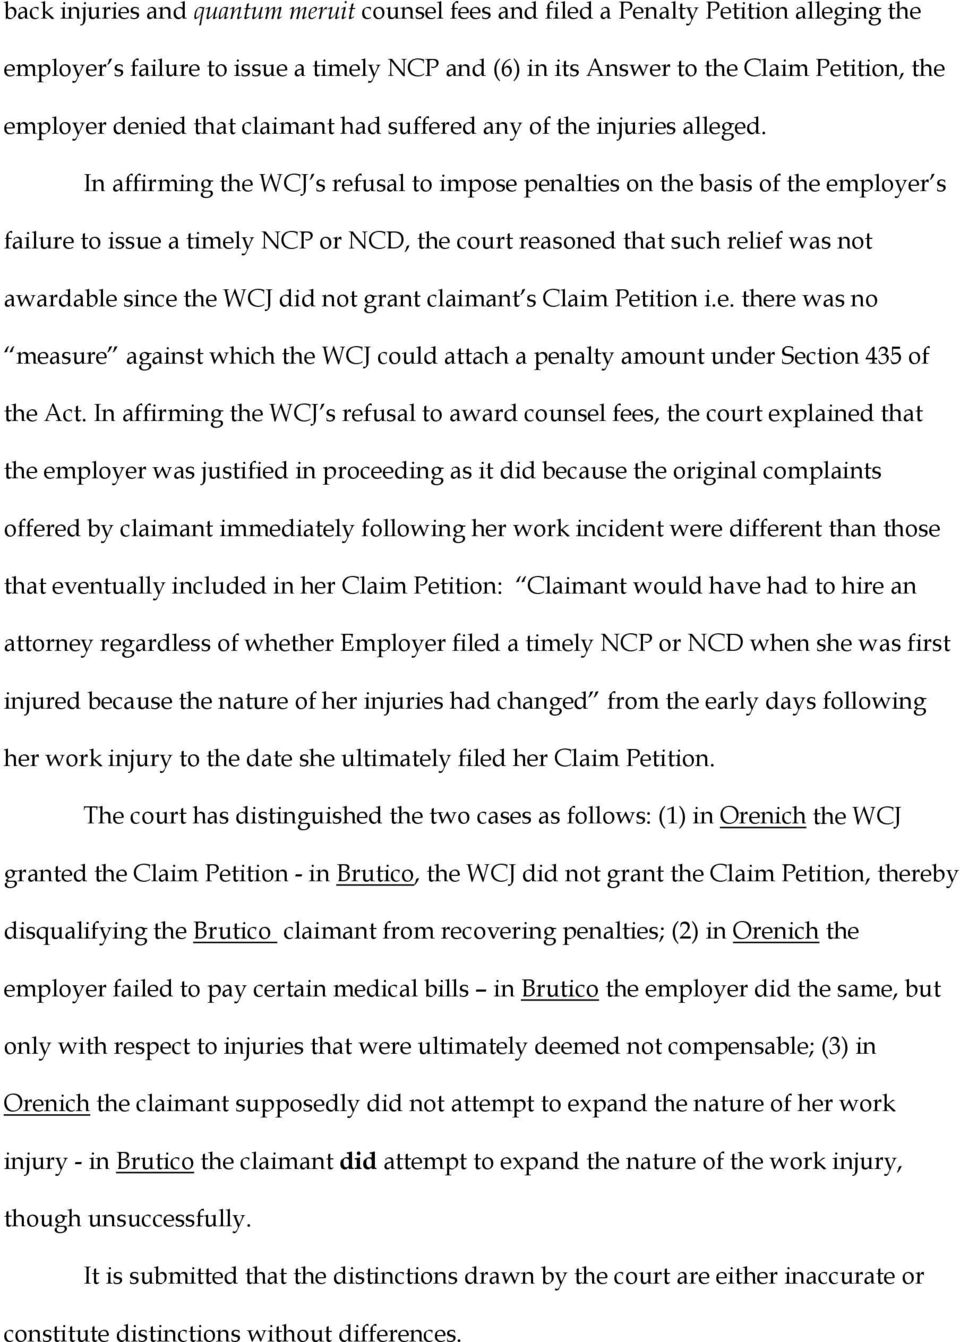 In affirming the WCJ s refusal to impose penalties on the basis of the employer s failure to issue a timely NCP or NCD, the court reasoned that such relief was not awardable since the WCJ did not